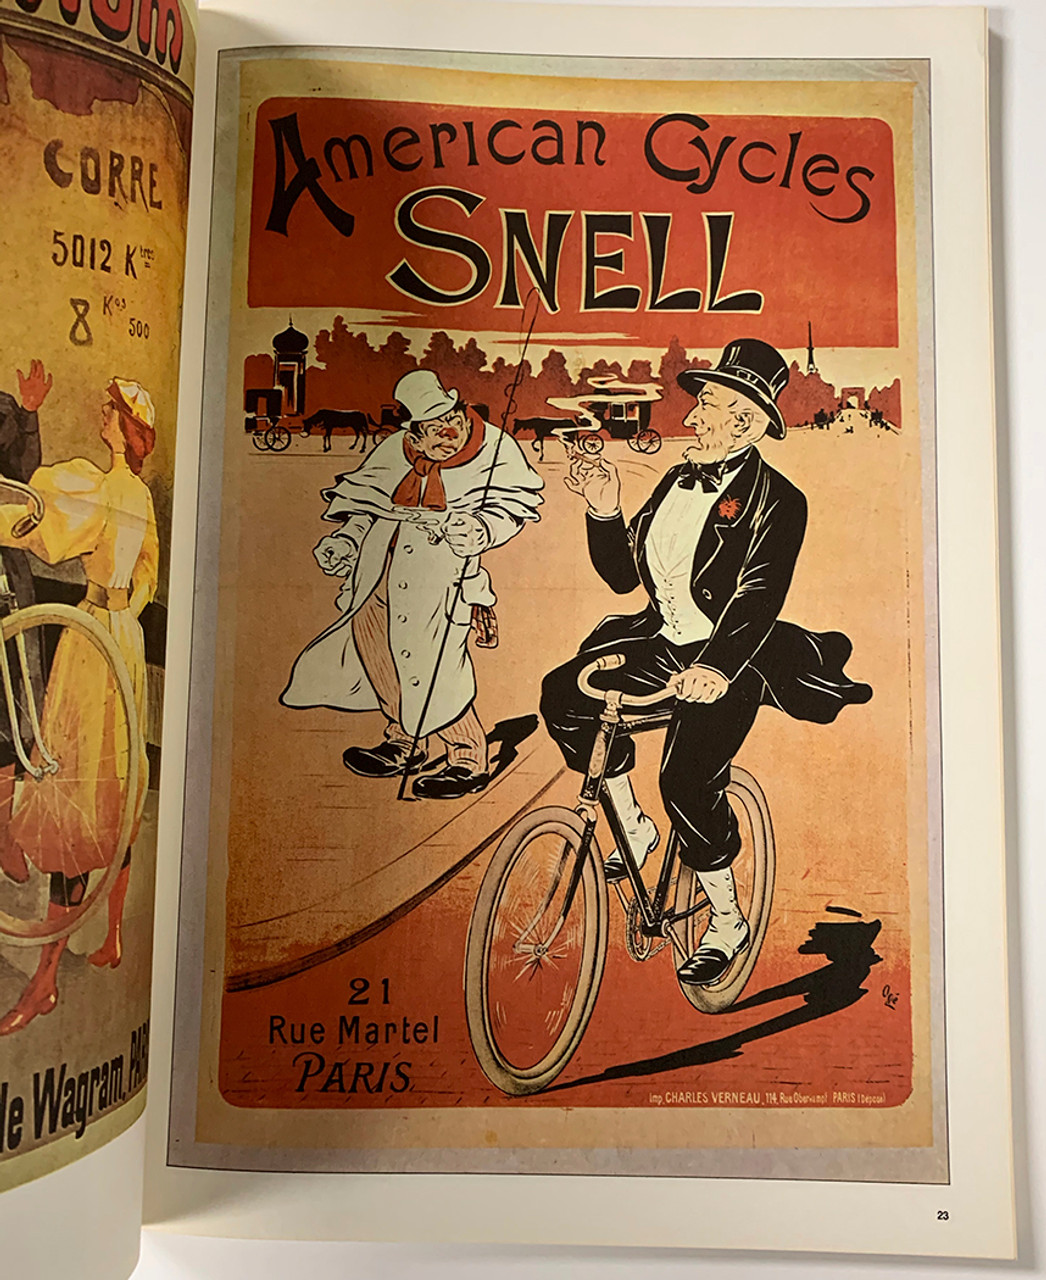 100 Years of Bicycle Posters - Poster Image Page